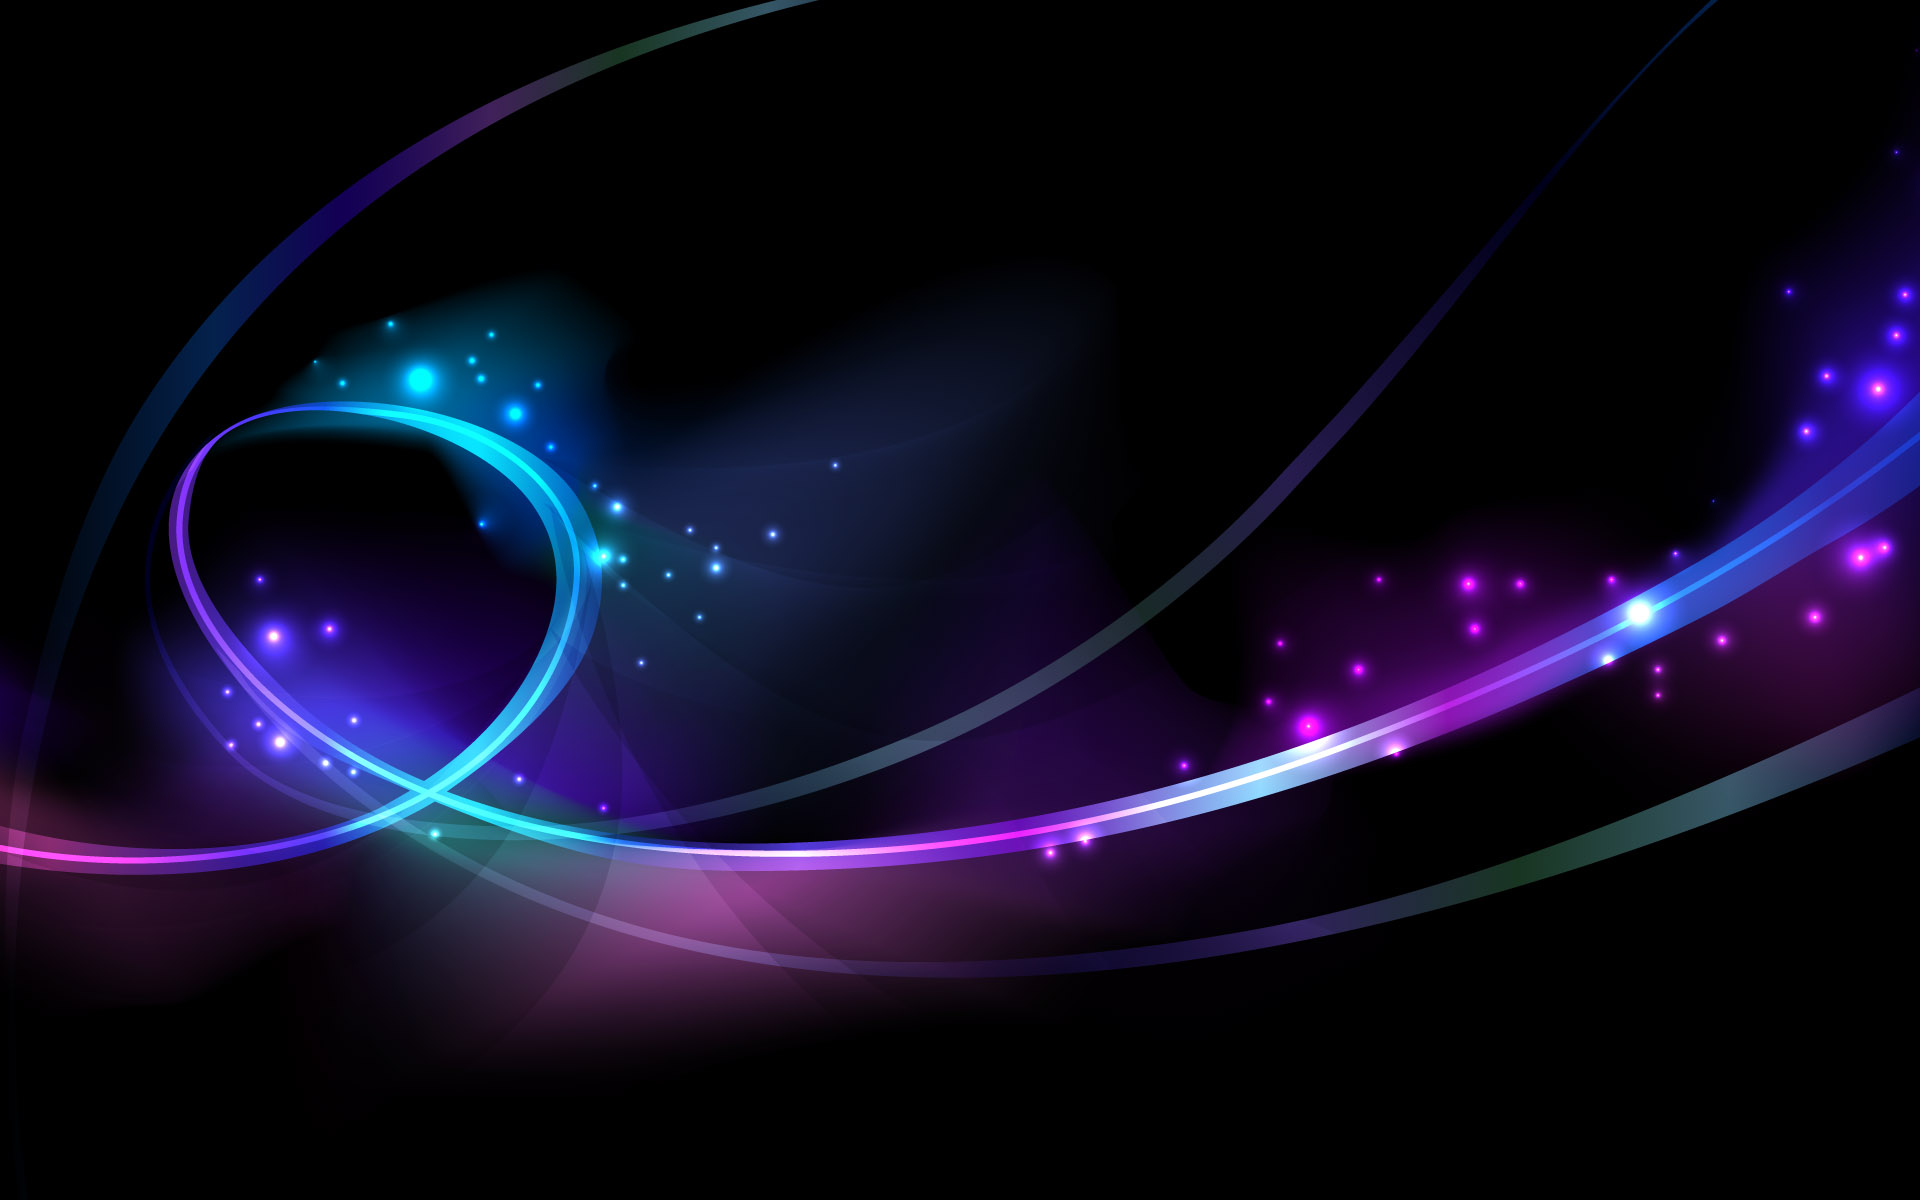 abstract wallpapers twitter artistic cool wallpaper 1920x1200 1920x1200